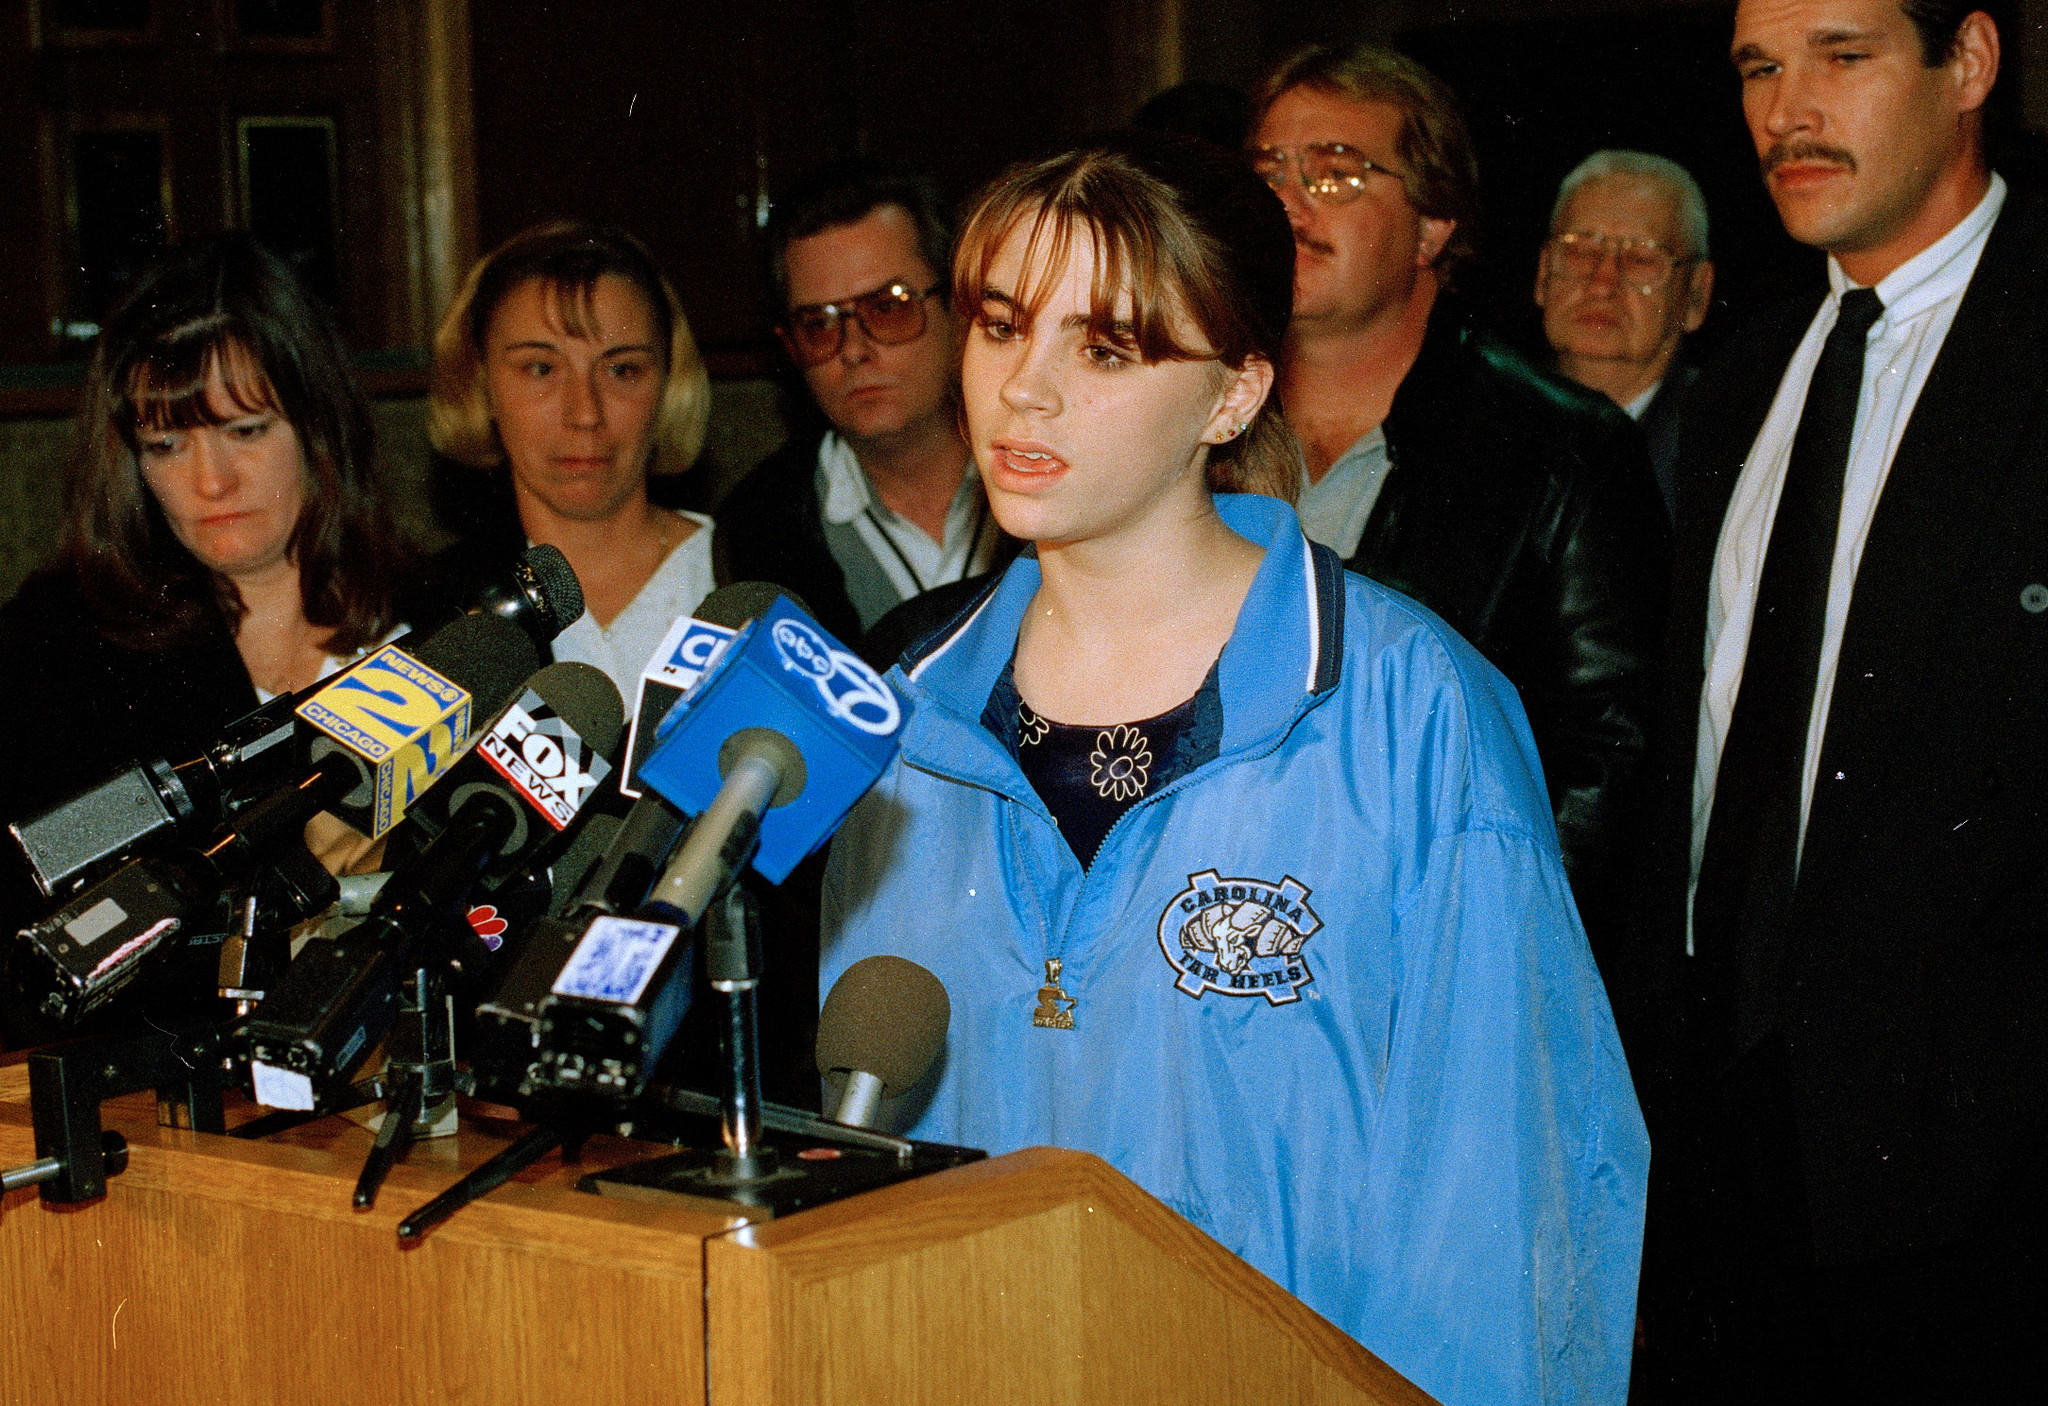 Sarah Sanaghan, 13, talks to reporters on Nov. 4, 1997 after a Will County jury convicted Richard Devon in the hit-and-run that injured her and killed her twin sister, Cari, Courtney Lauer, and Sheena Acres.